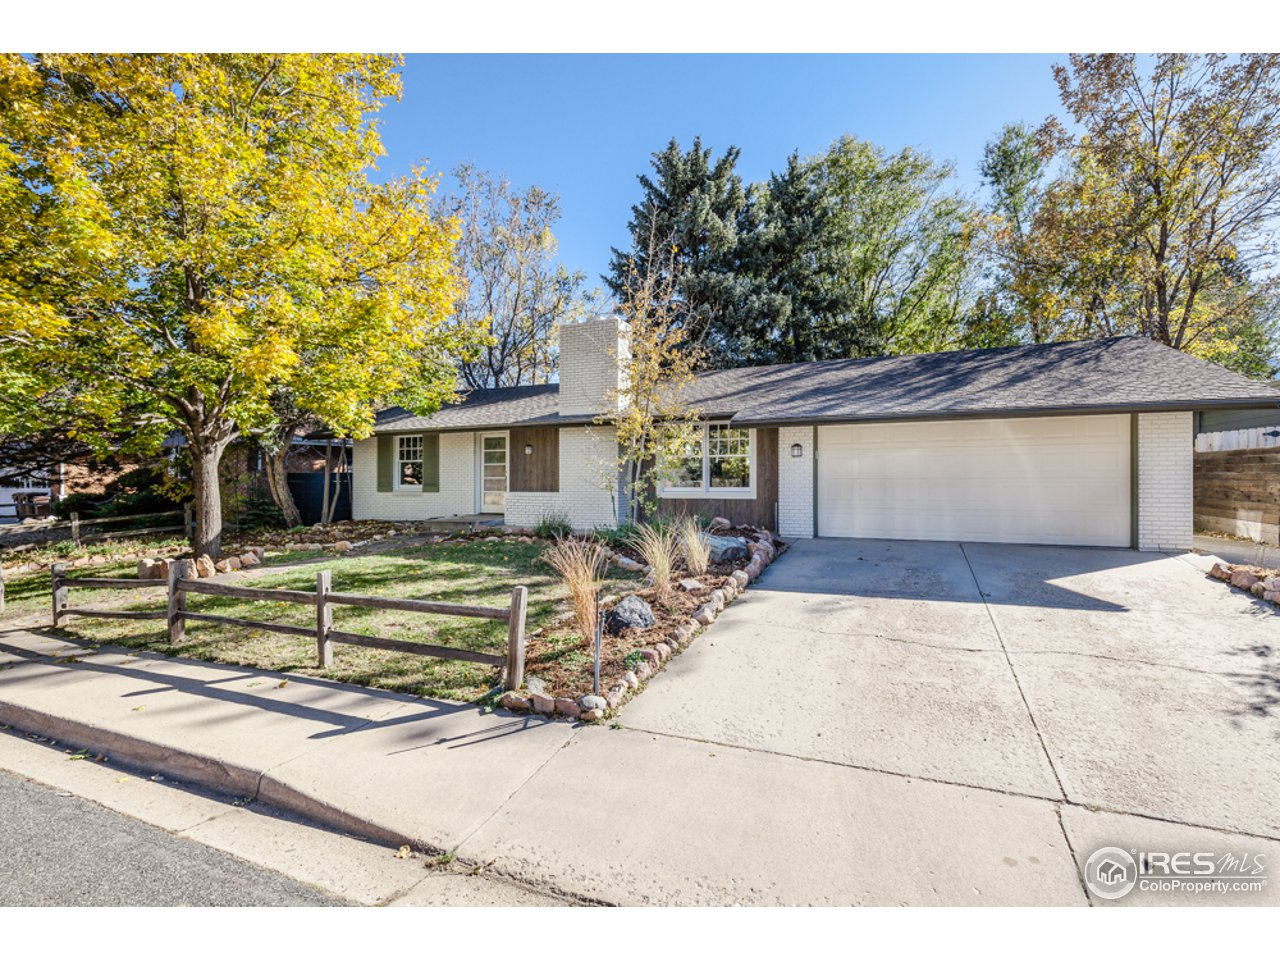 1920 Vista Dr, Boulder CO 80304